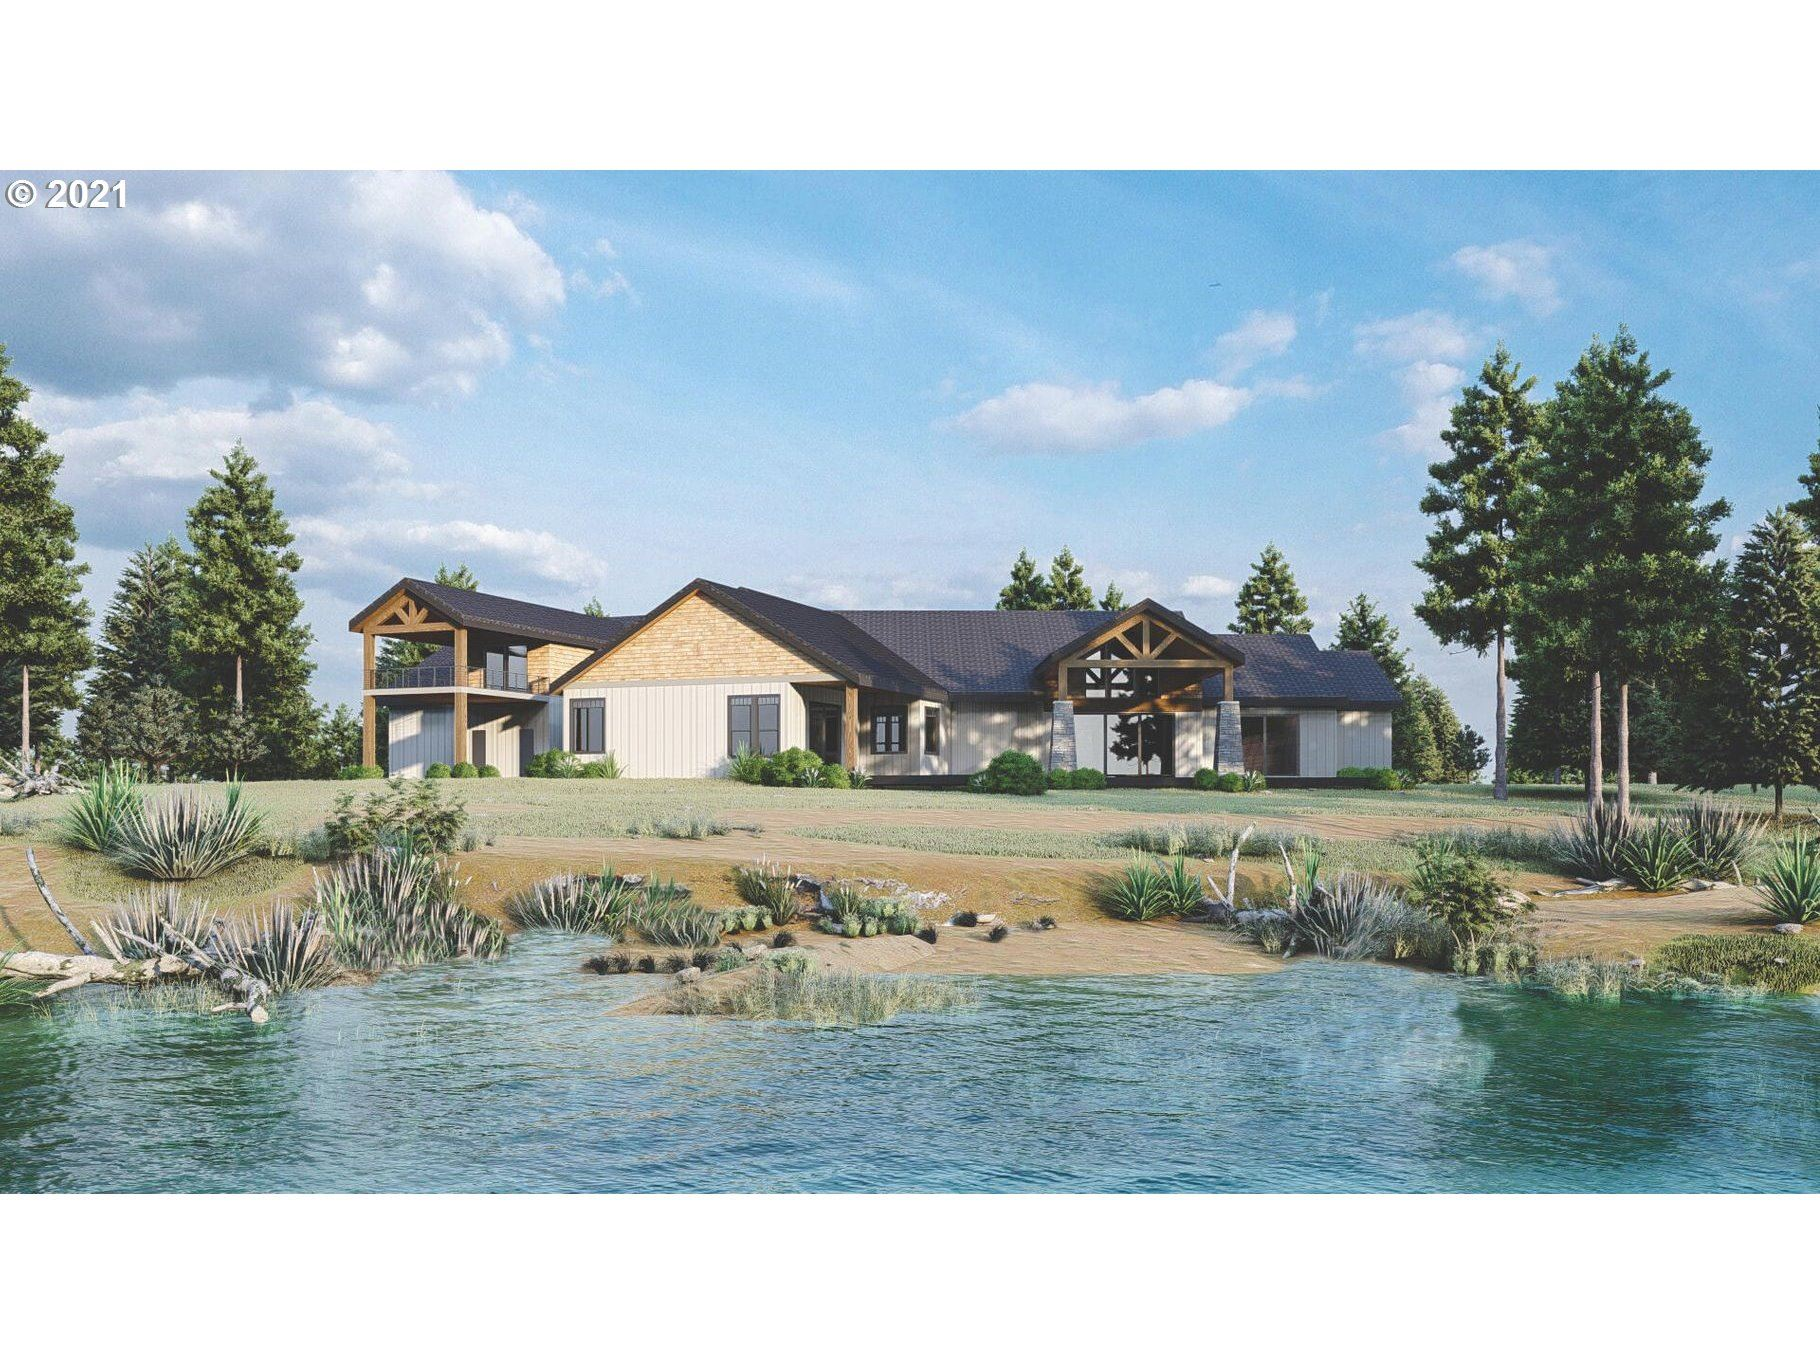 5 Lakes at Tanager, Bend, OR 97703 - MLS#: 21056186